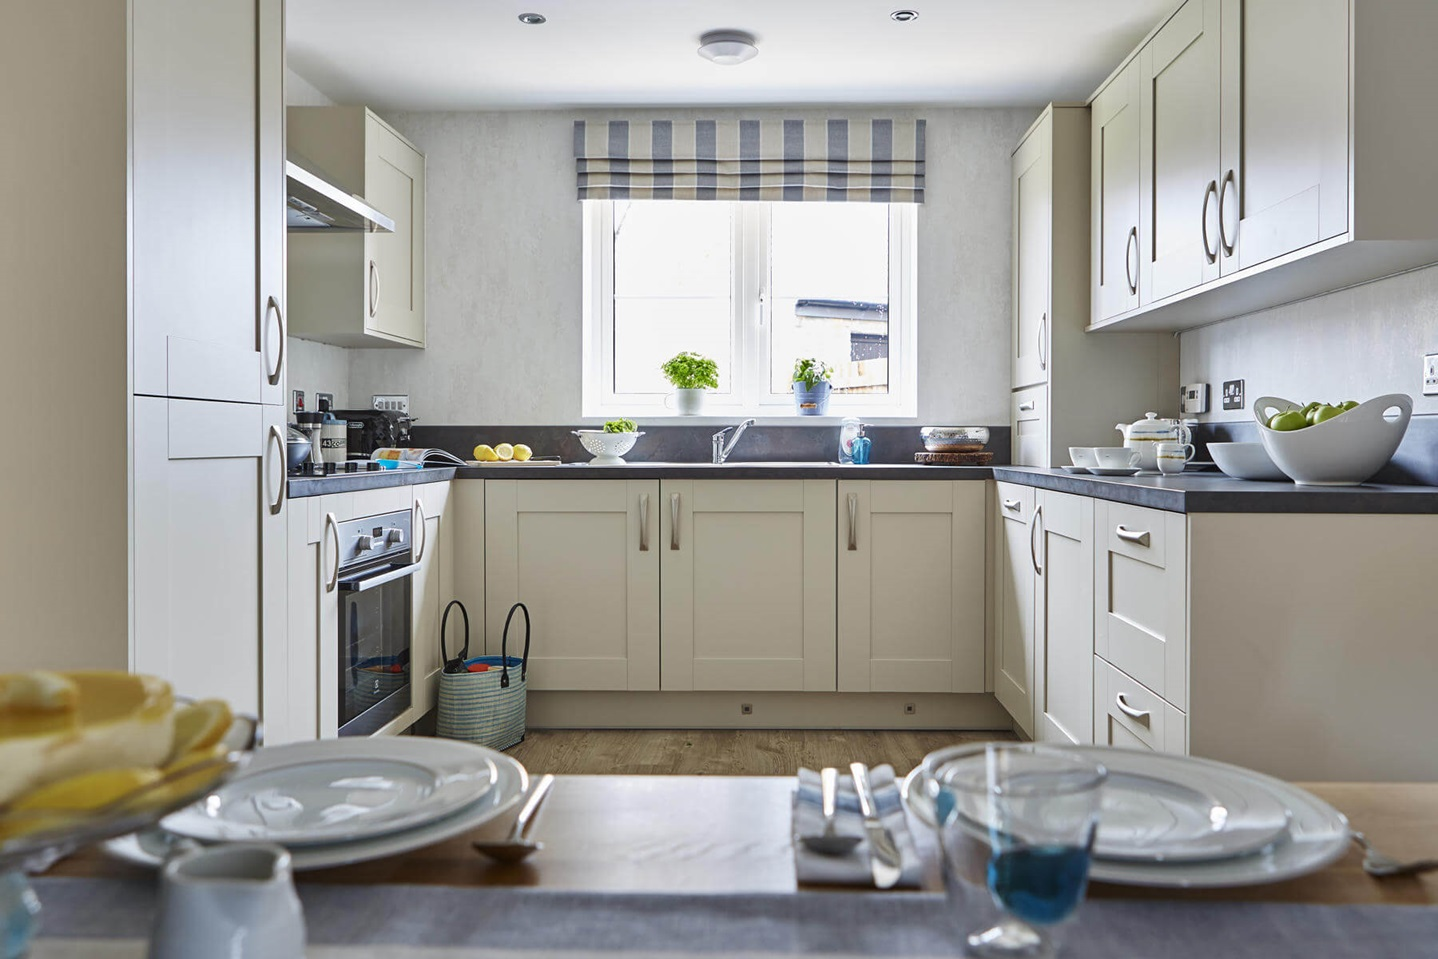 TW Oxford_Bourne View_Hook Norton_PT37_Yewdale_Kitchen_1800x1200